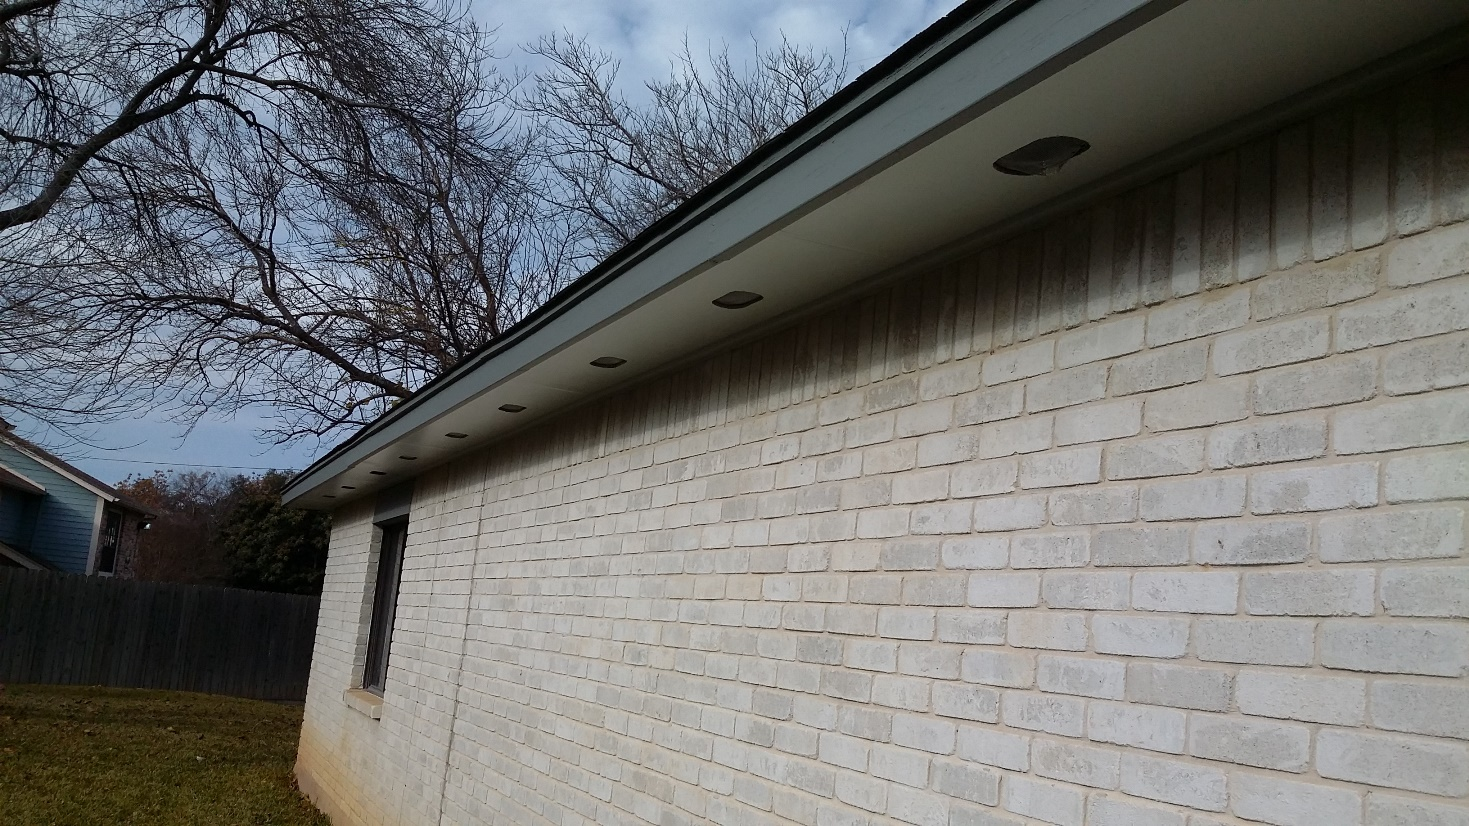 House Painter San Antonio Tx Before During And After Pictures 20 Antonio 39 S Drywall